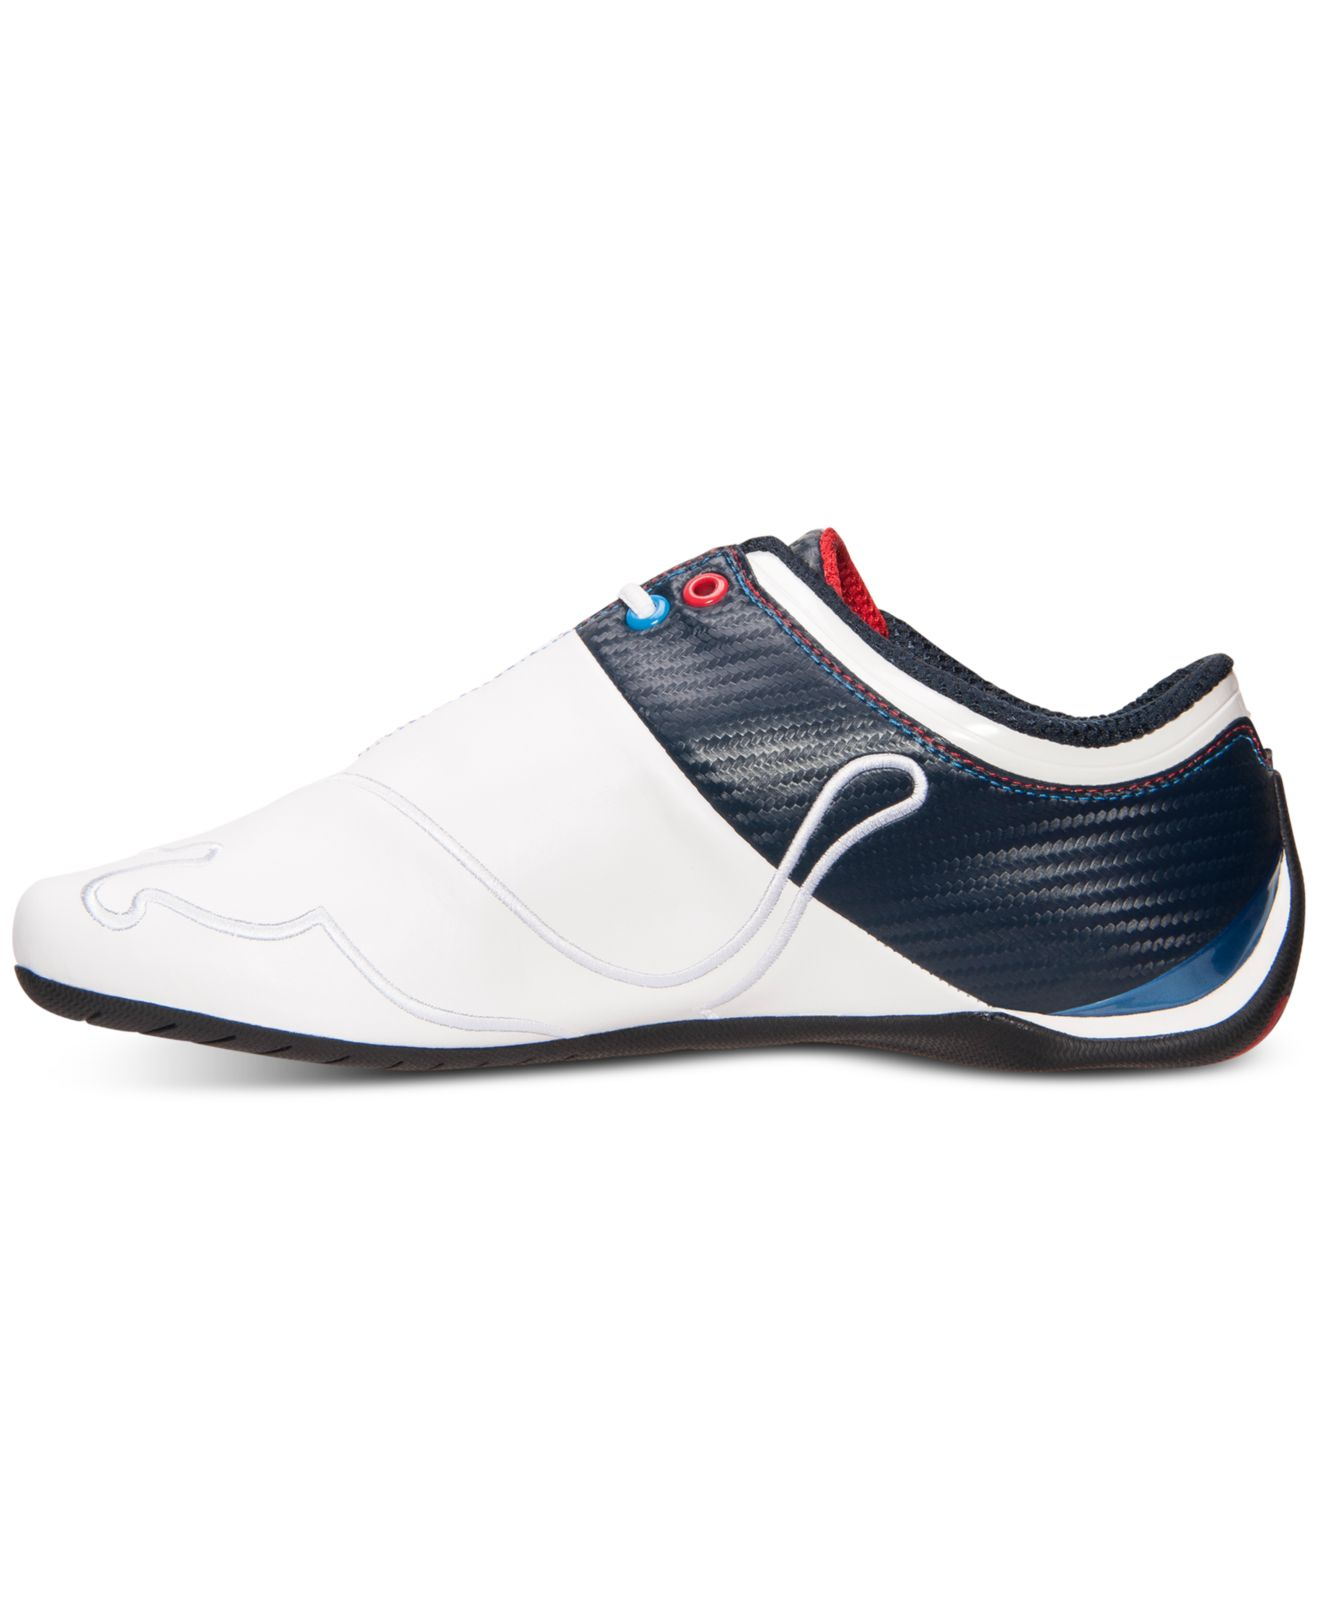 19b1ce1bbf61 Lyst - PUMA Mens Future Cat M1 Bmw Big Carbon Casual Sneakers From Finish  Line in Blue for Men